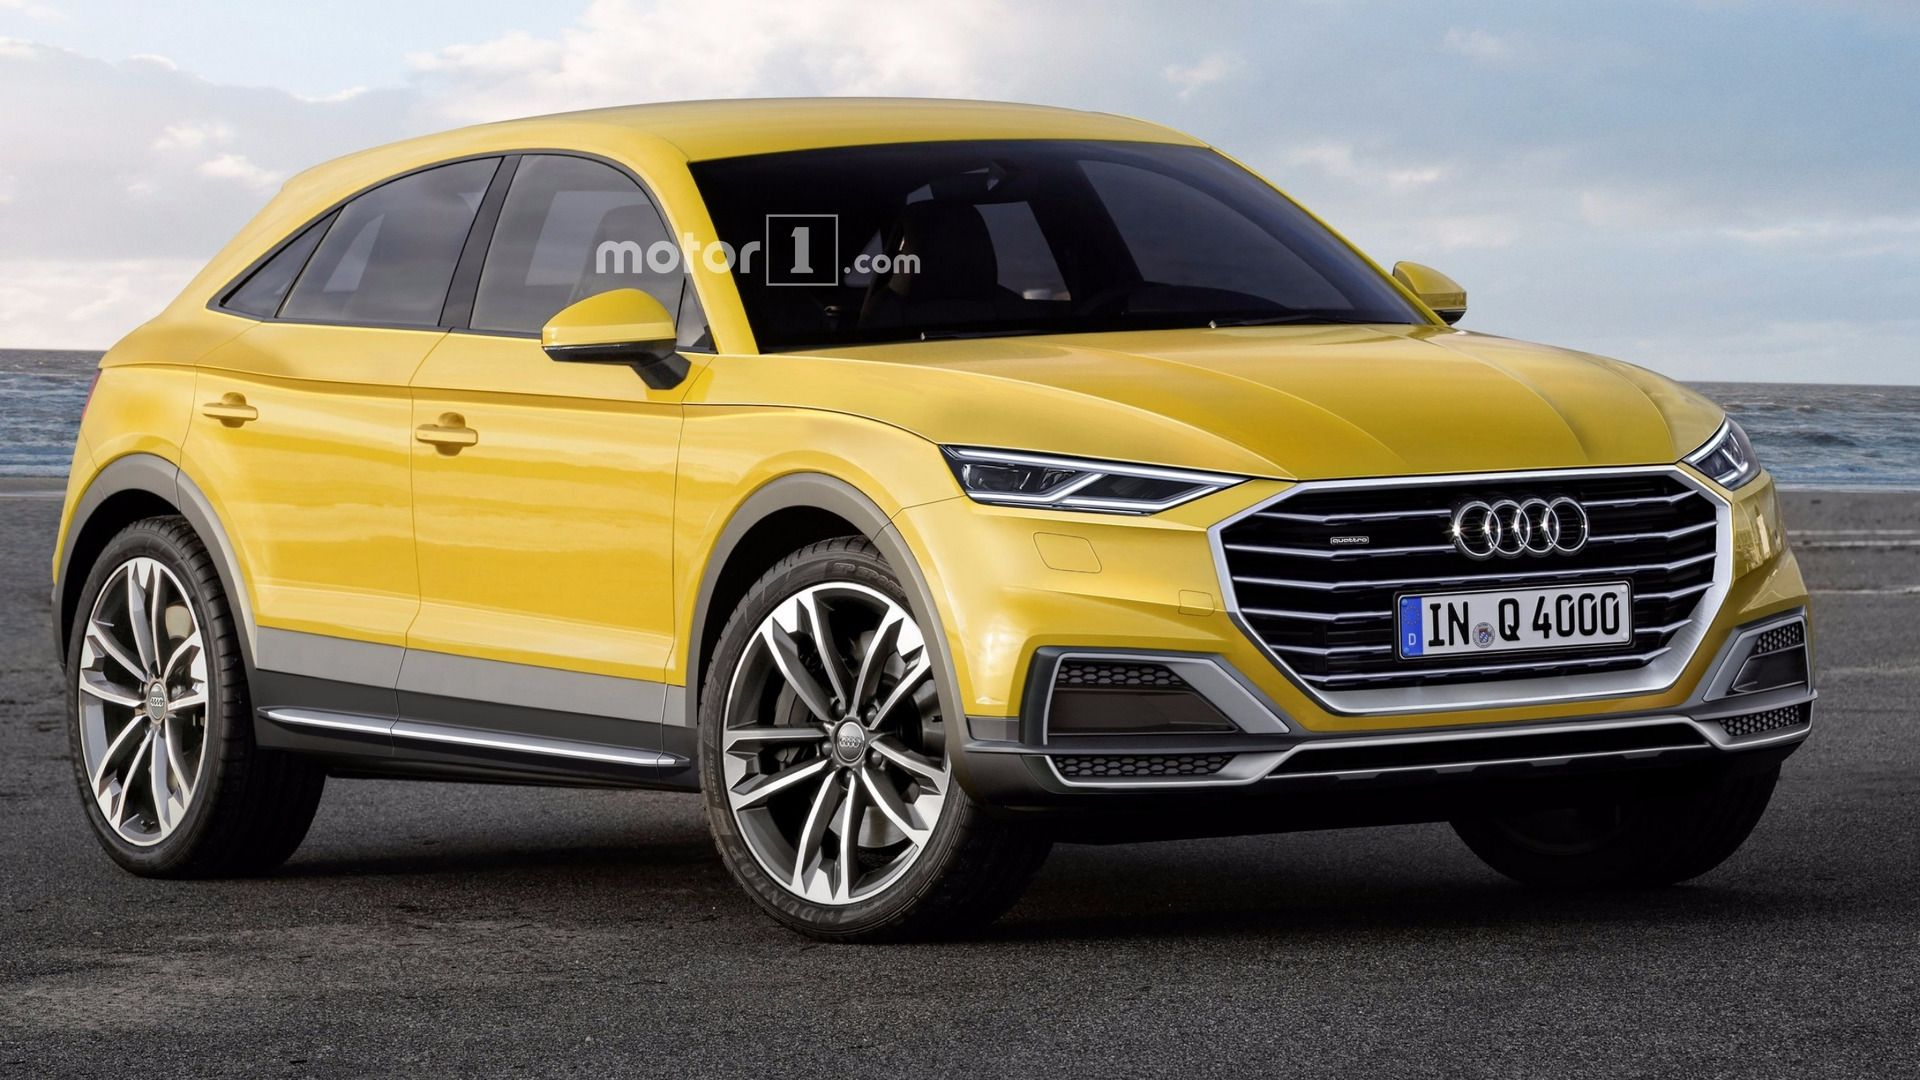 Will The Audi Q Look Like This Audi Cars Car Quattro - Cool cars 2019